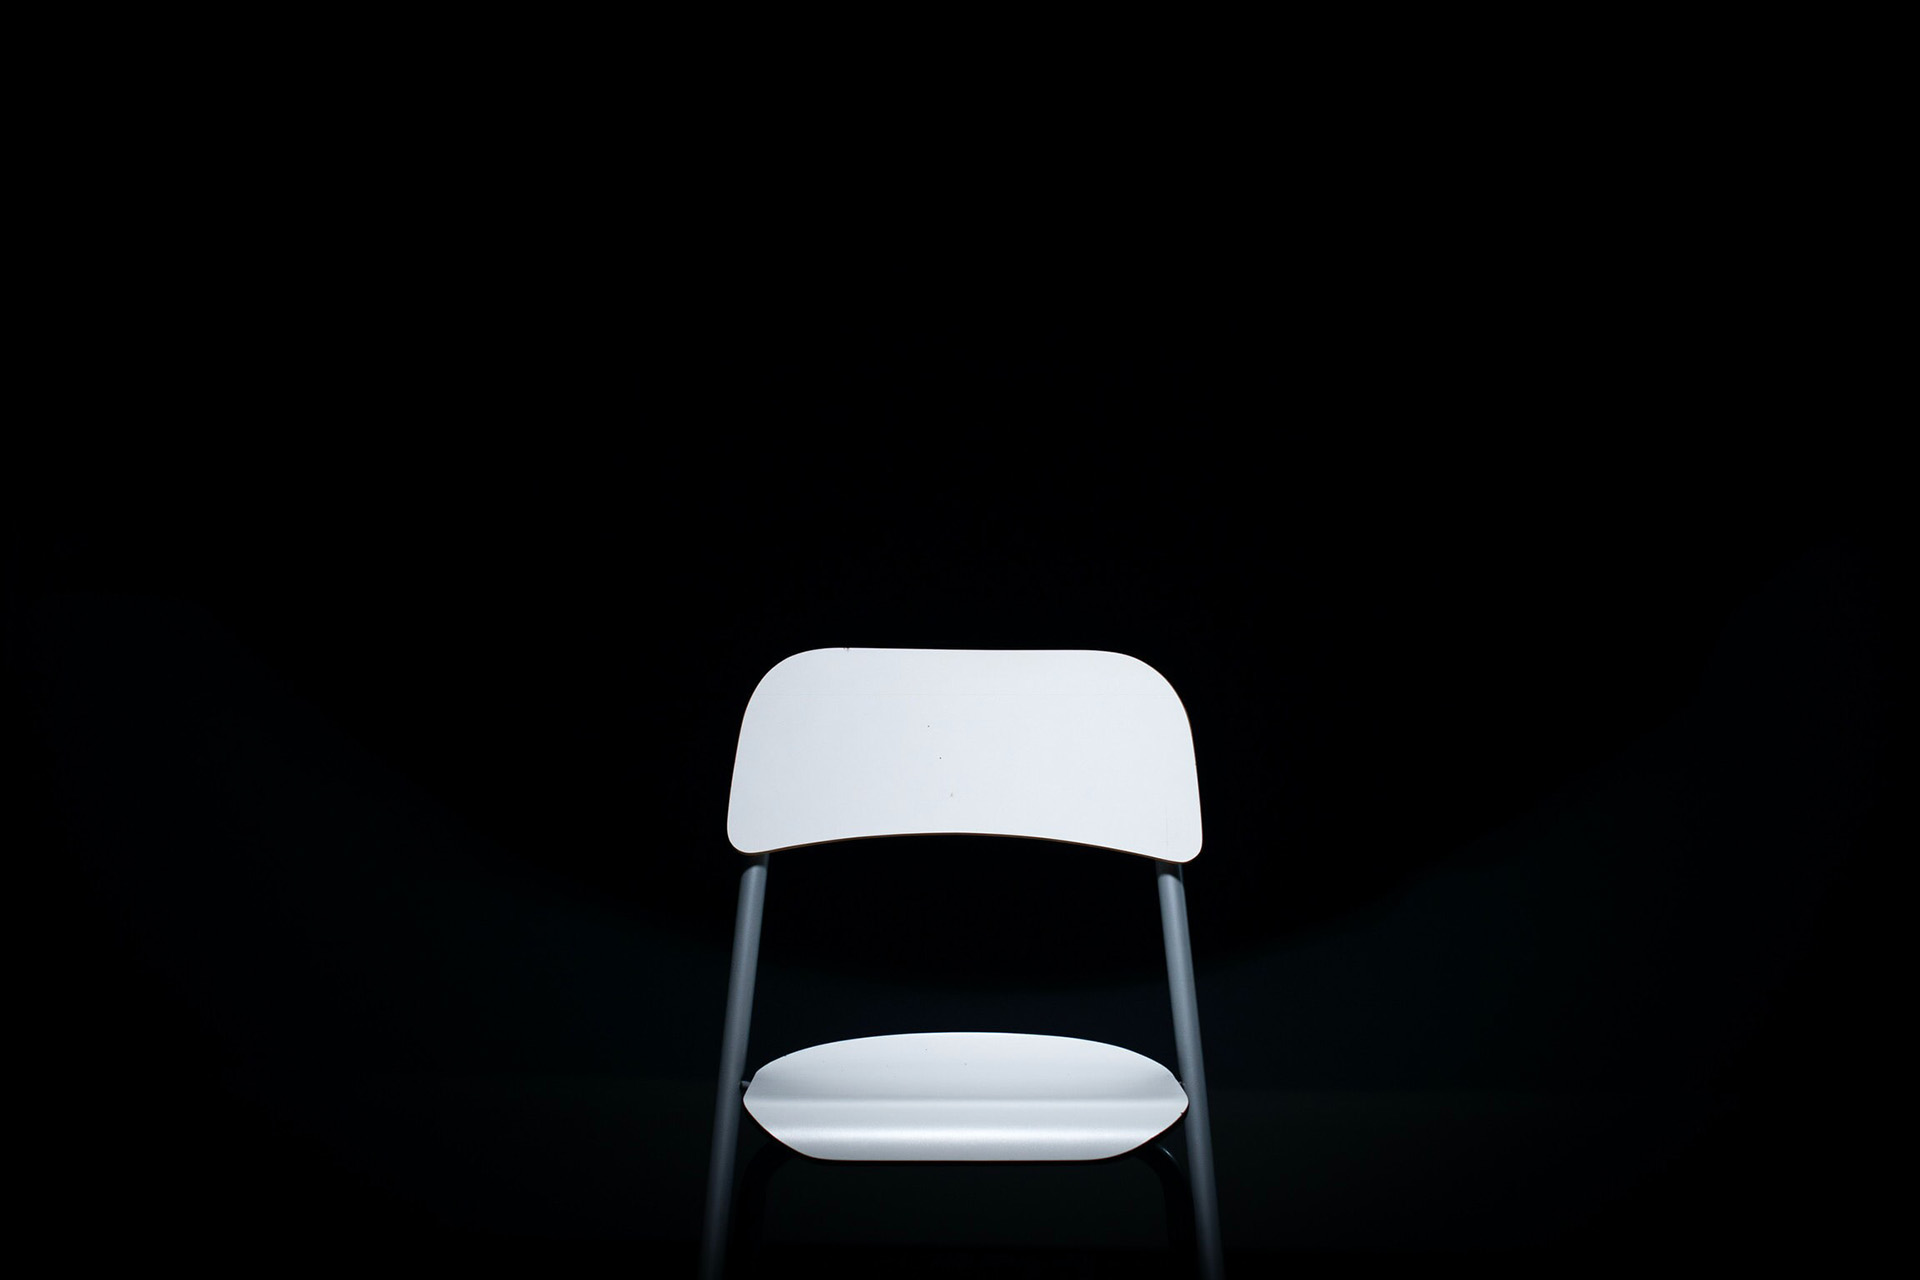 White chair in a black room